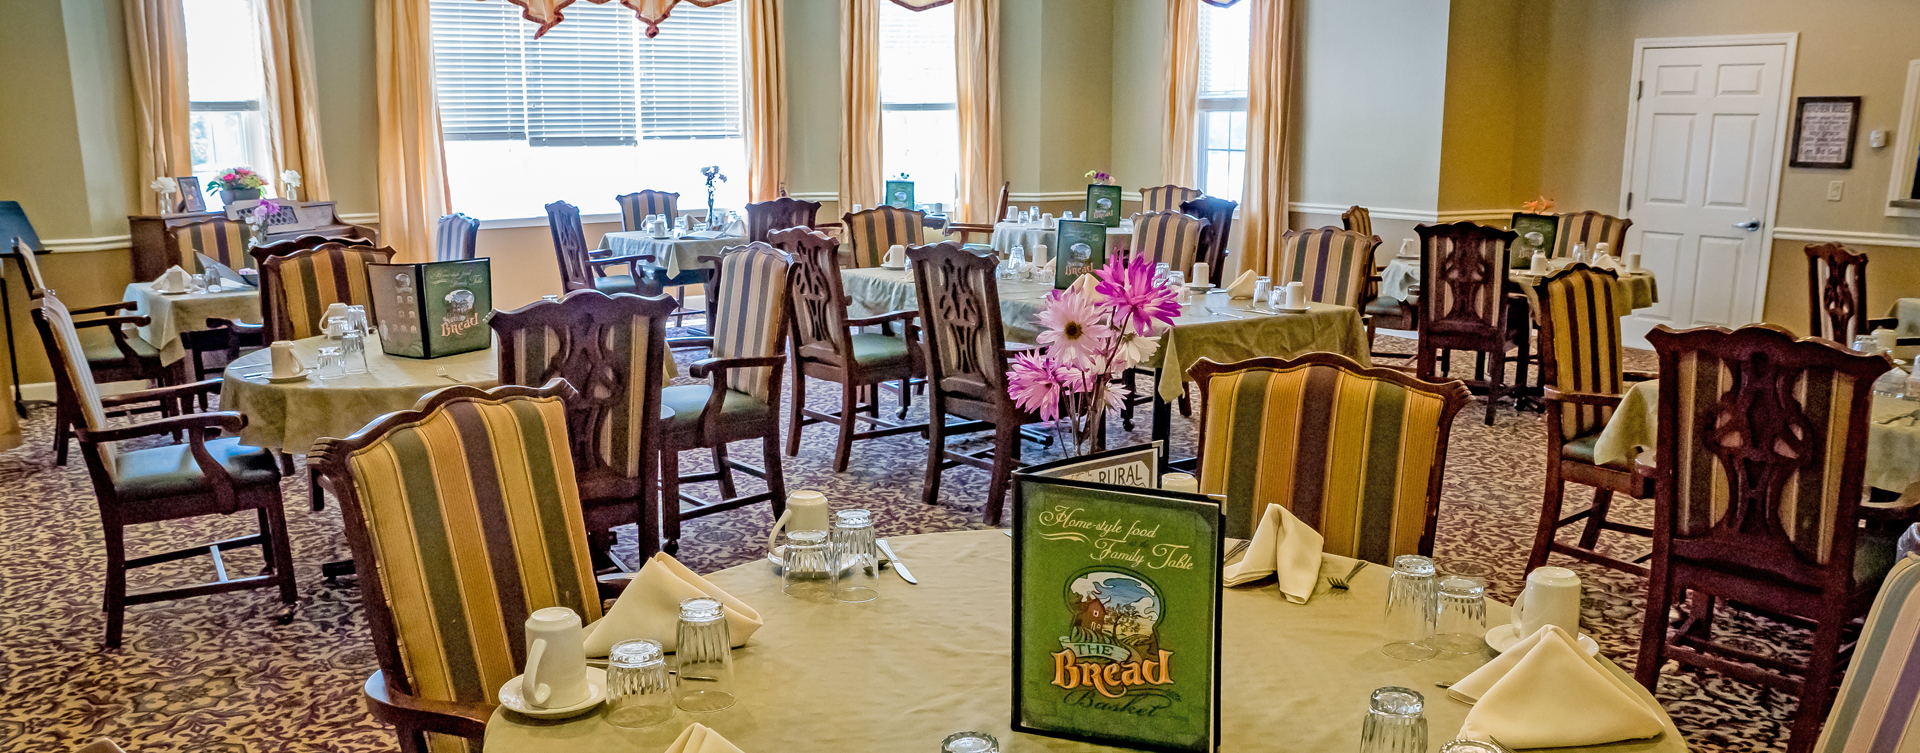 Food is best when shared with friends in the dining room at Bickford of Oswego